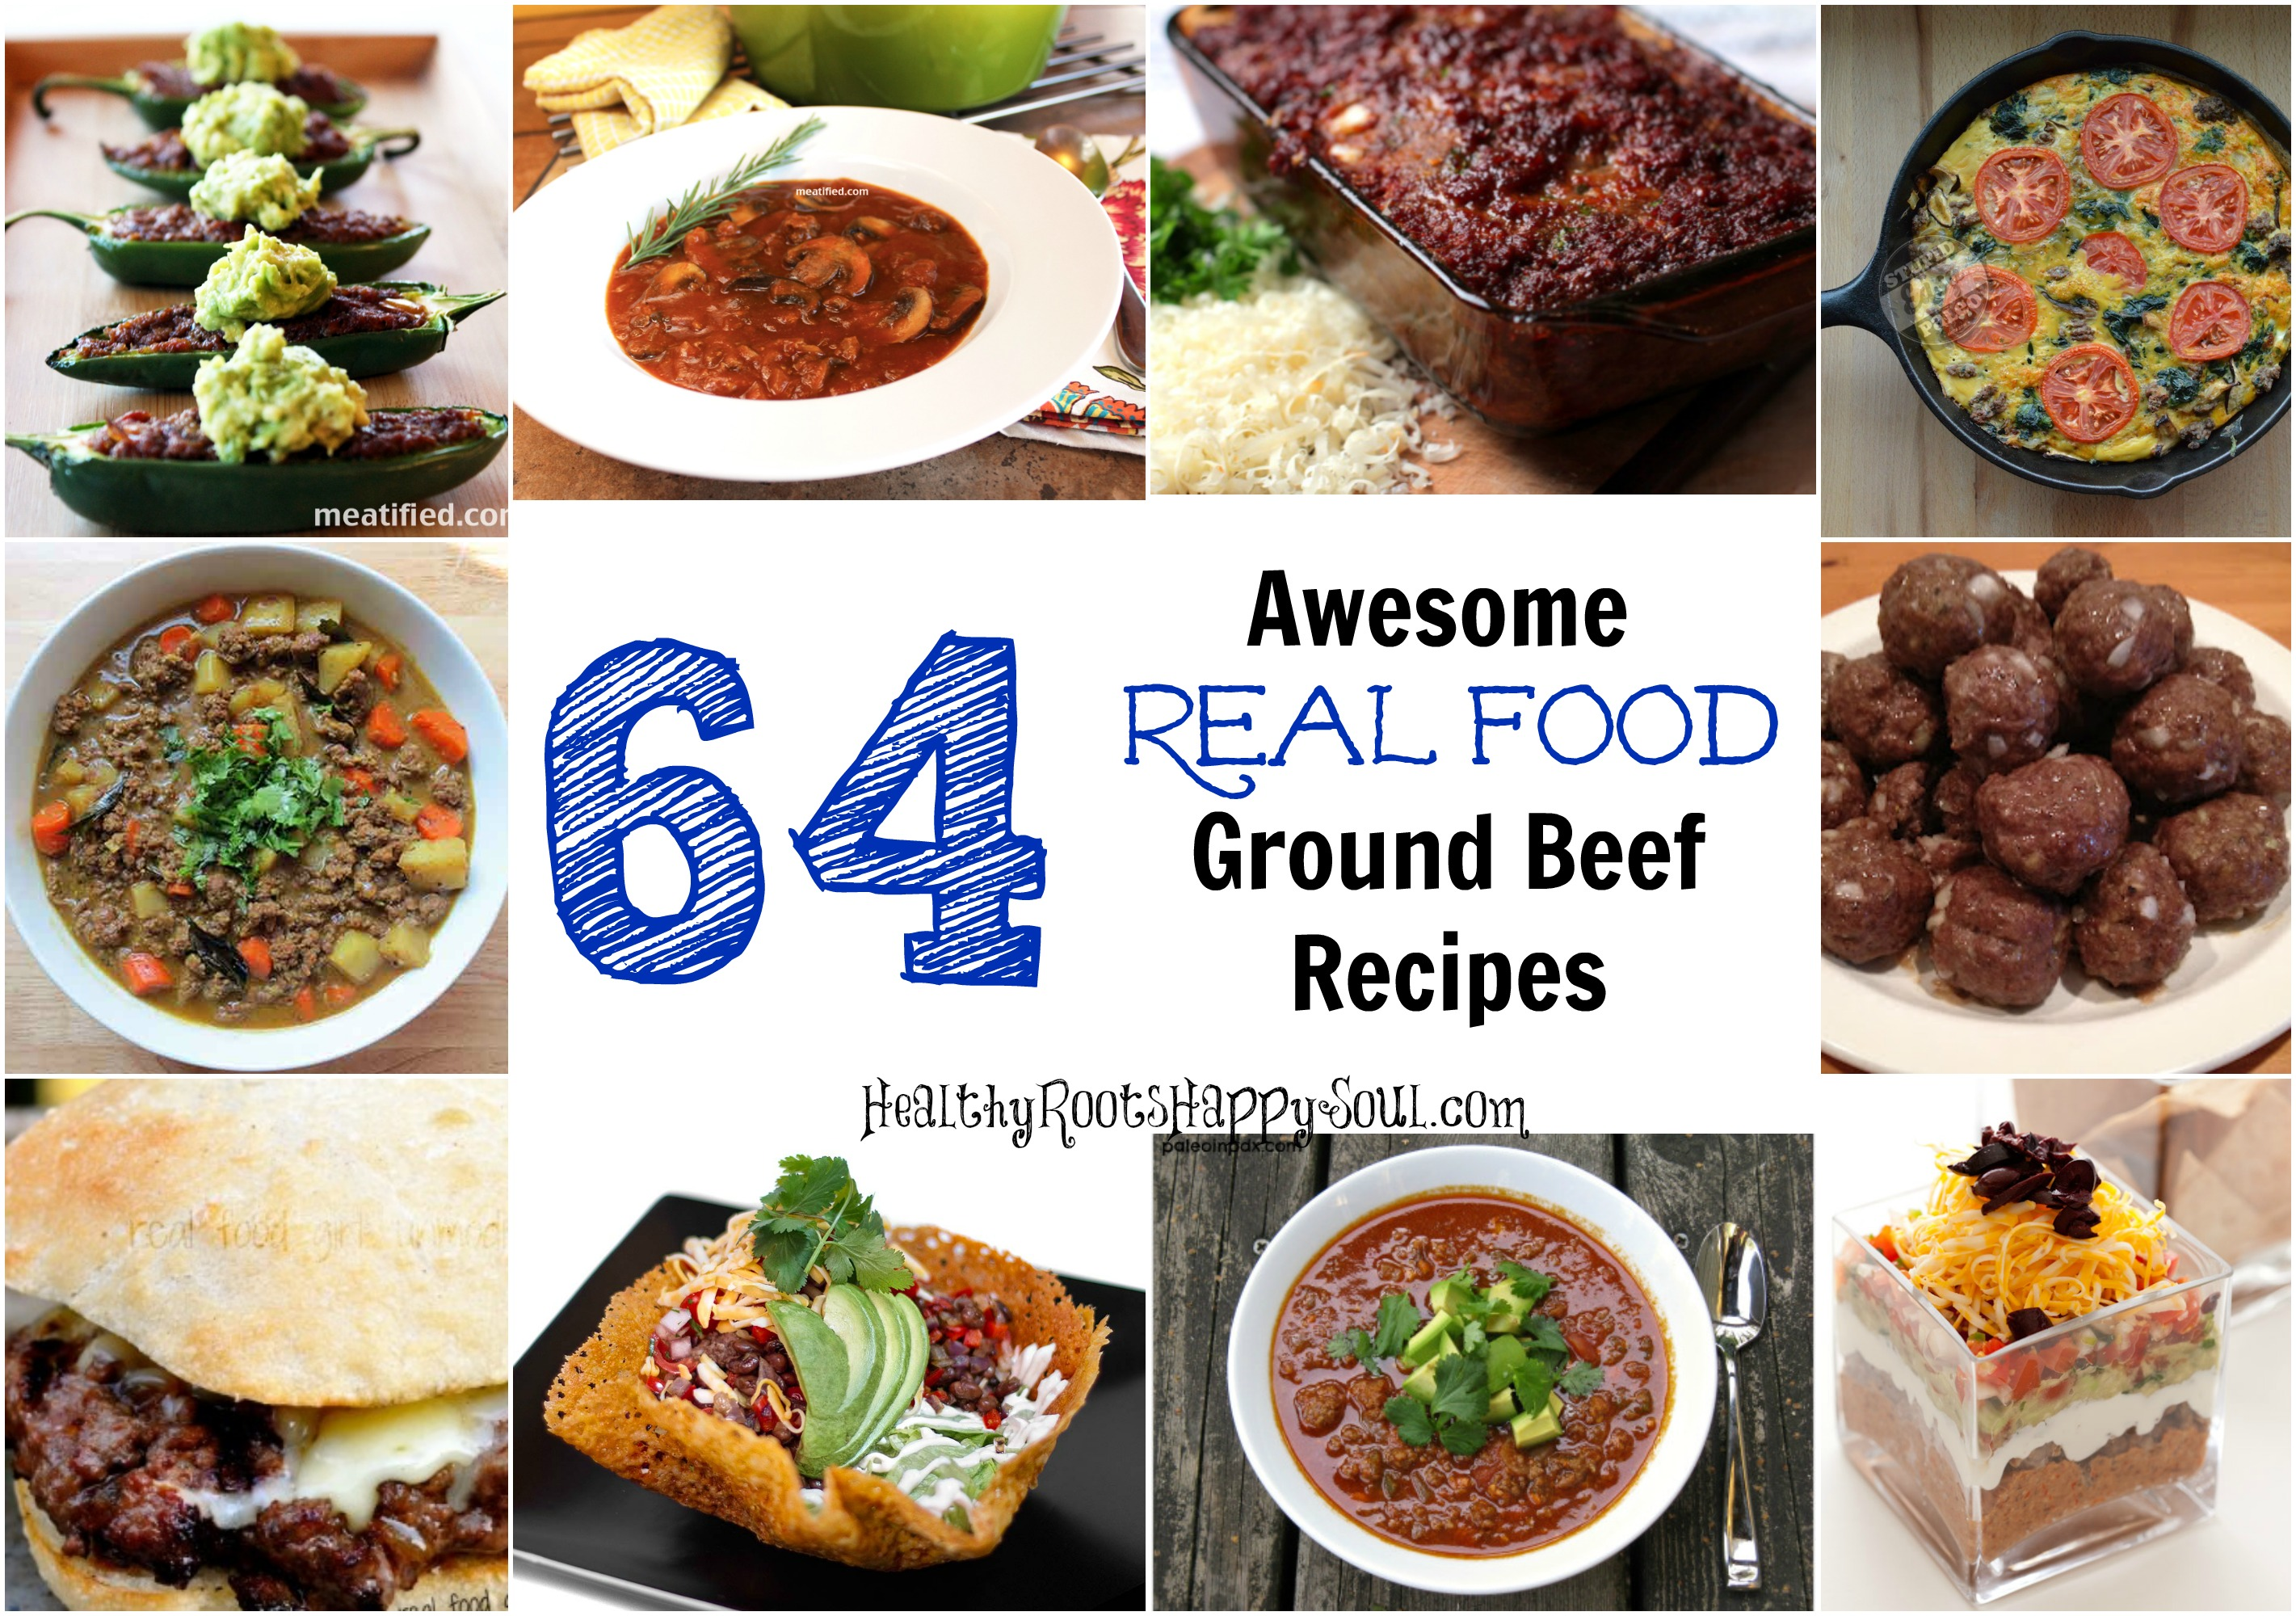 Naturally loriel 64 awesome real food ground beef recipes 64 ground beef recipes forumfinder